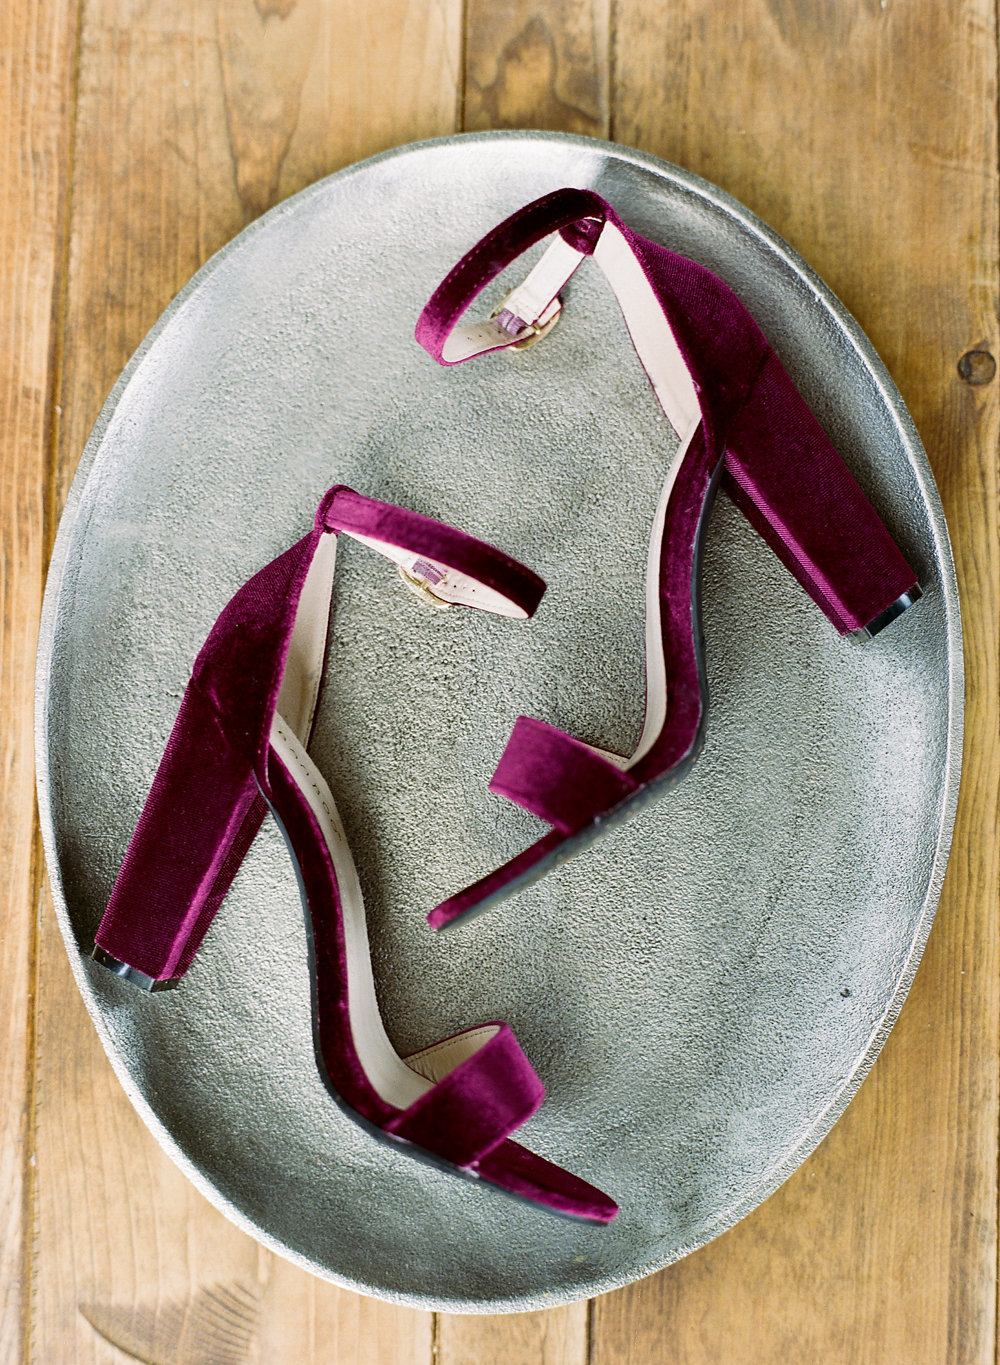 burgundy wedding shoes - photo by Taken by Sarah Photography http://ruffledblog.com/intimate-rustic-chic-wedding-inspiration